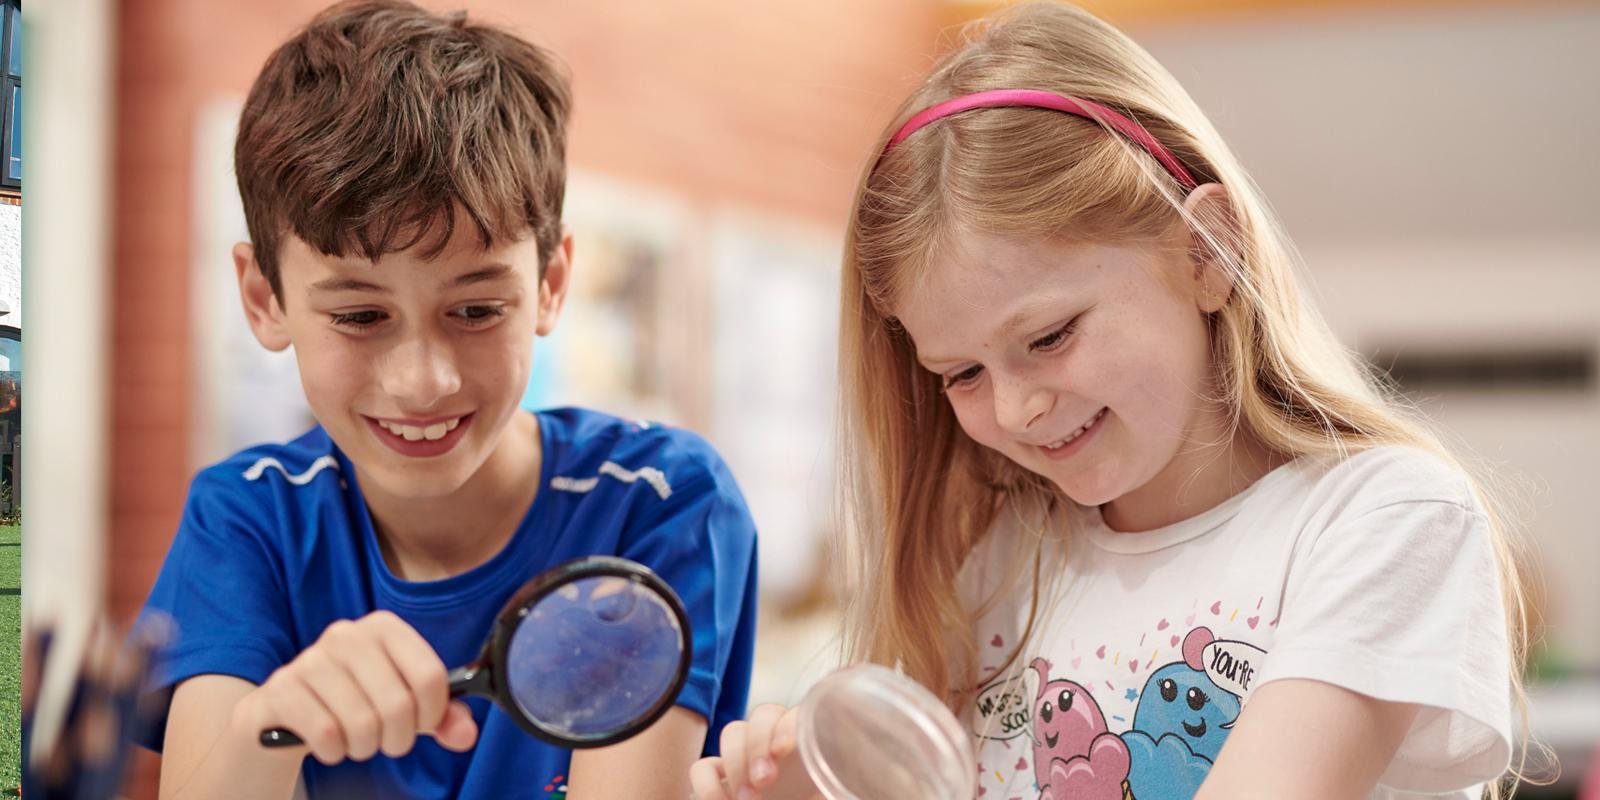 Two students play with magnifying glass